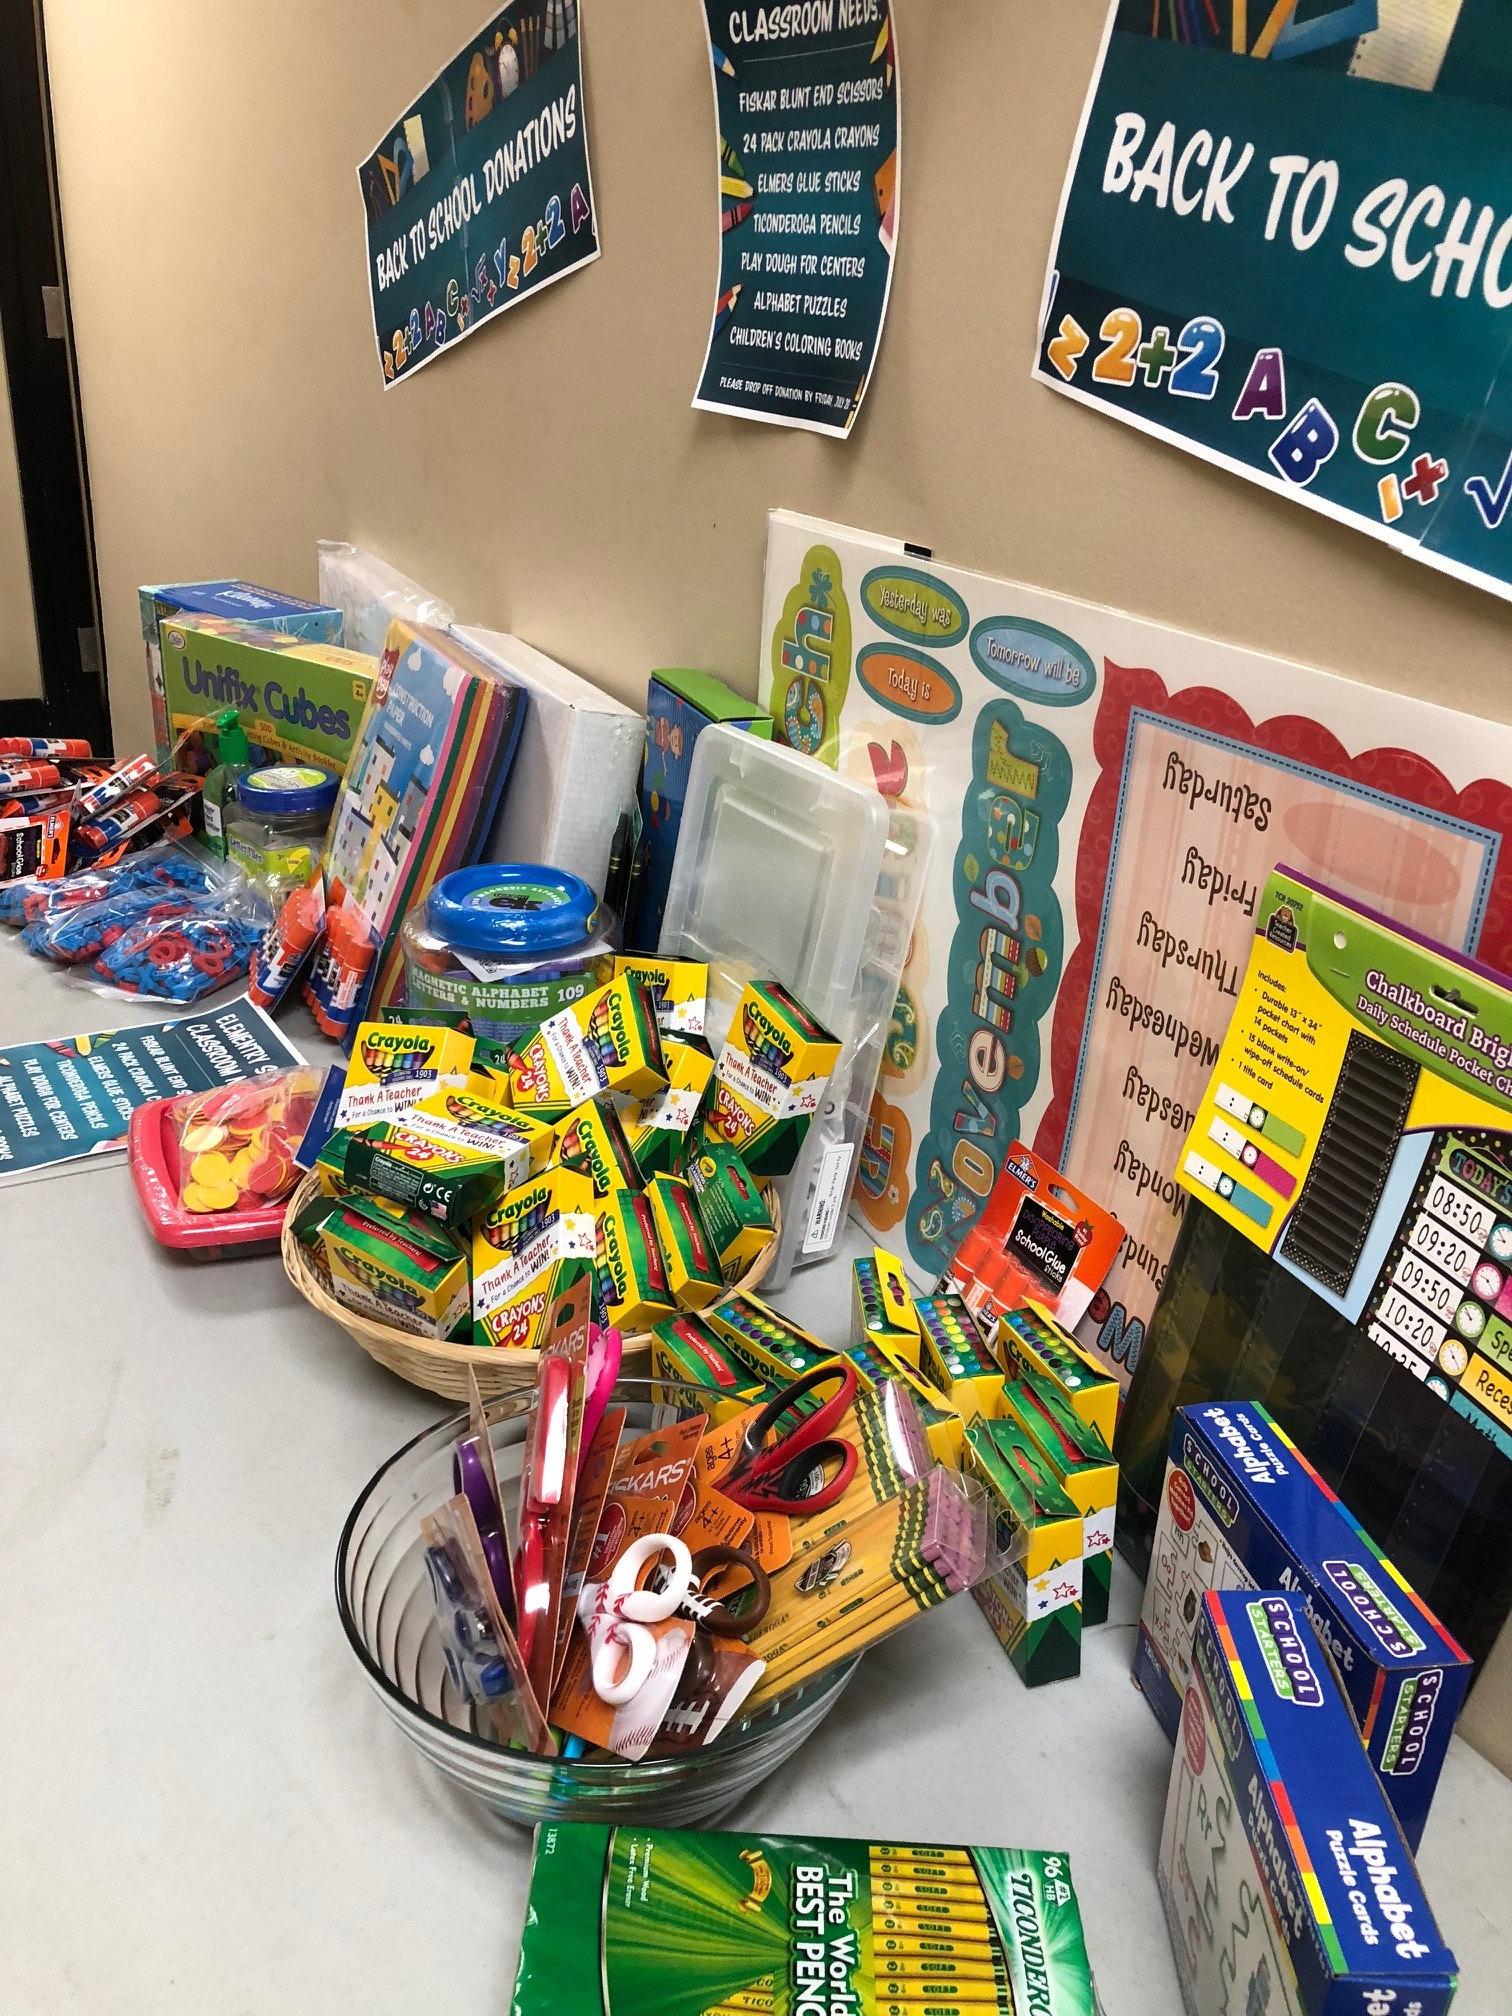 35 Random Acts of Kindness - School Supplies Donation